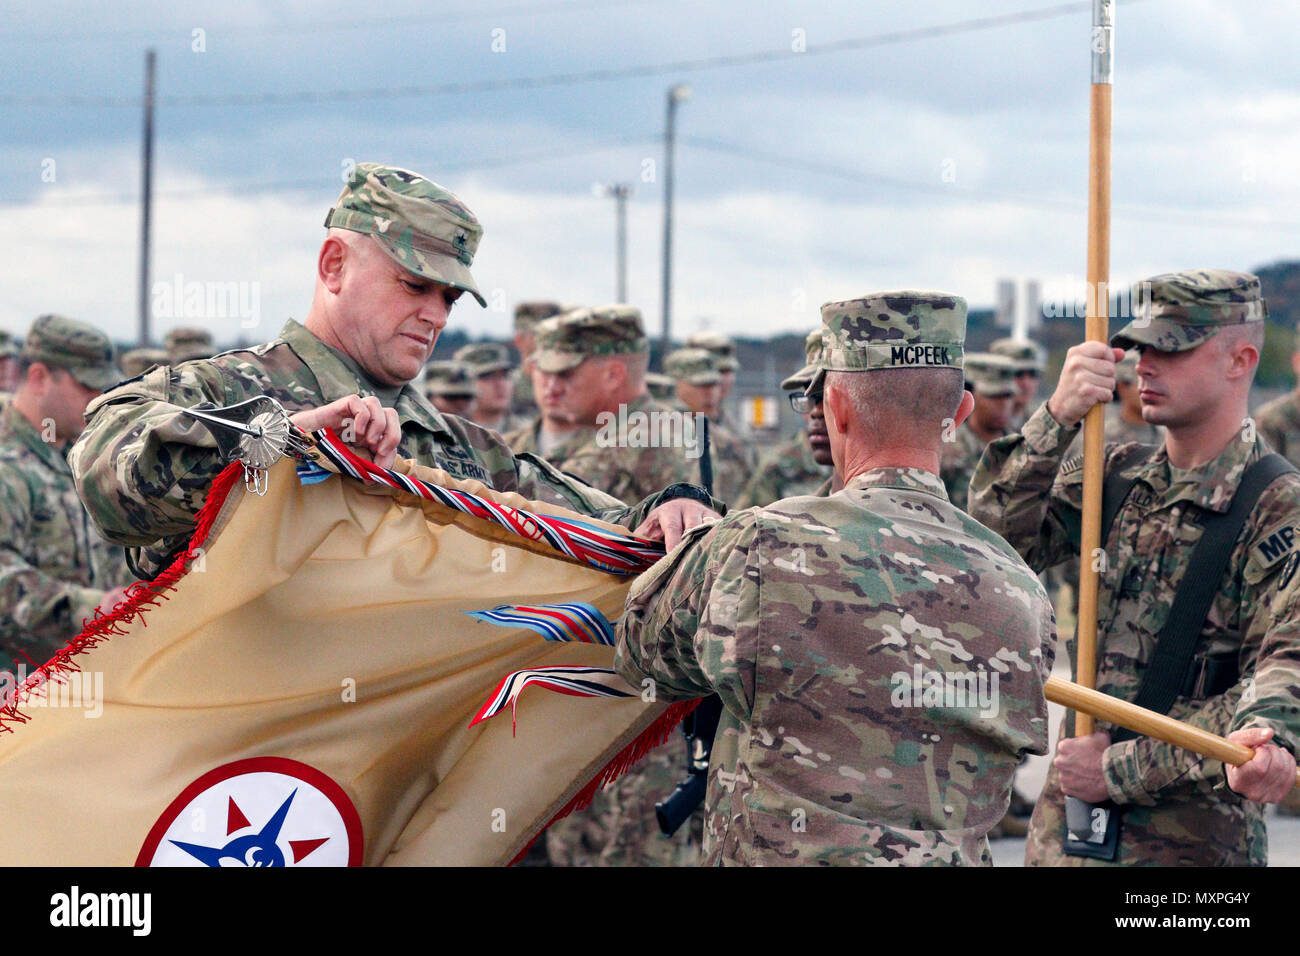 (Left) Brig. Gen. Robert D. Harter, Commanding General of the 316th Sustainment Command (Expeditionary), cases the 316th ESC guidon with Command Sgt. Maj. Johnny McPeek (Right), the 316th ESC Command Sergeant Major, during a Colors Casing ceremony at Fort Hood, Texas Nov. 28, 2016.  (U.S. Army photo by Sgt. Christopher Bigelow) - Stock Image